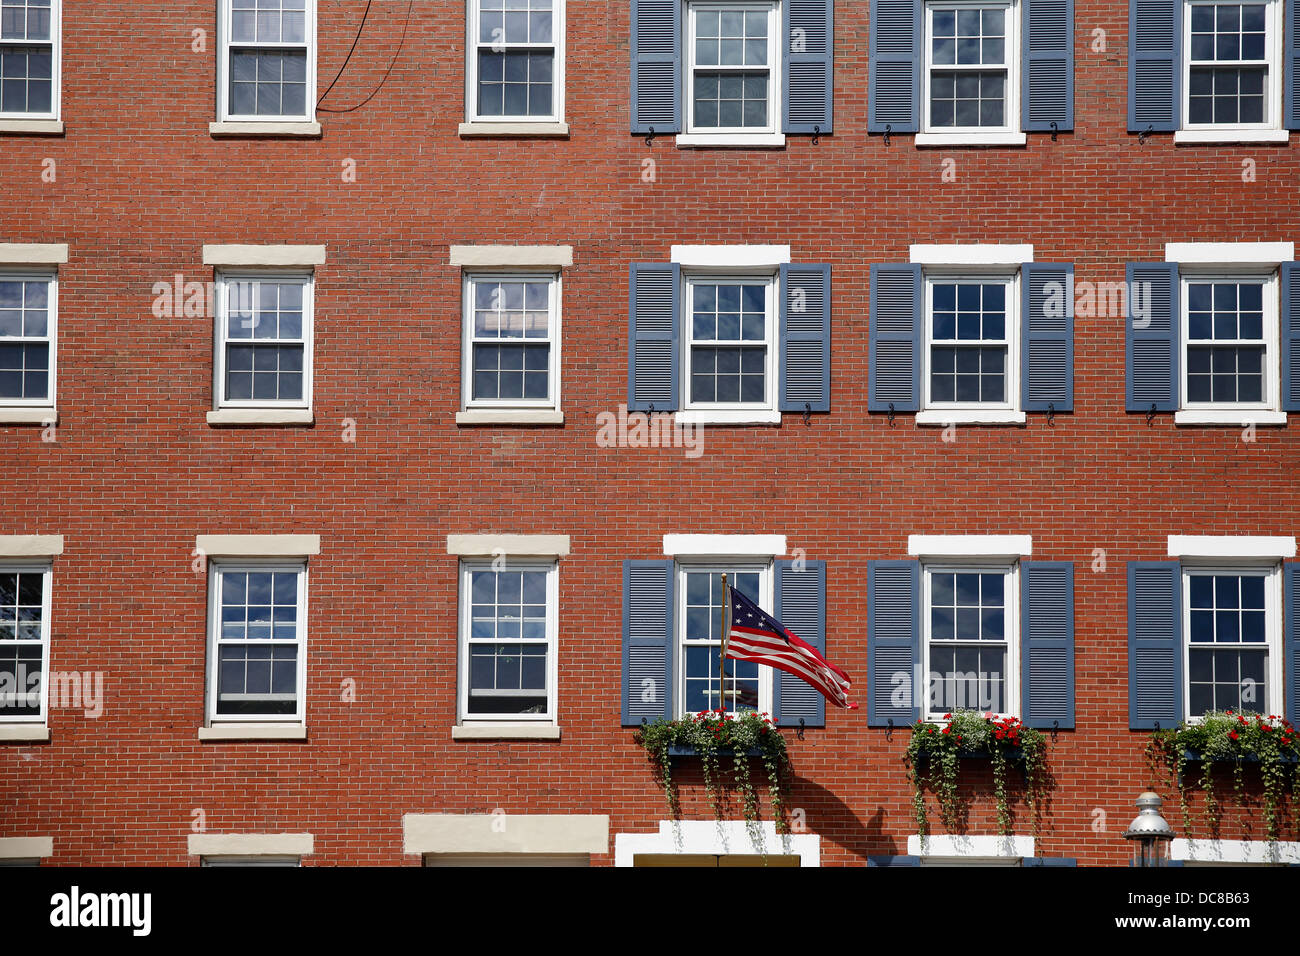 Brick Apartment Buildings Stock Photos & Brick Apartment Buildings ...